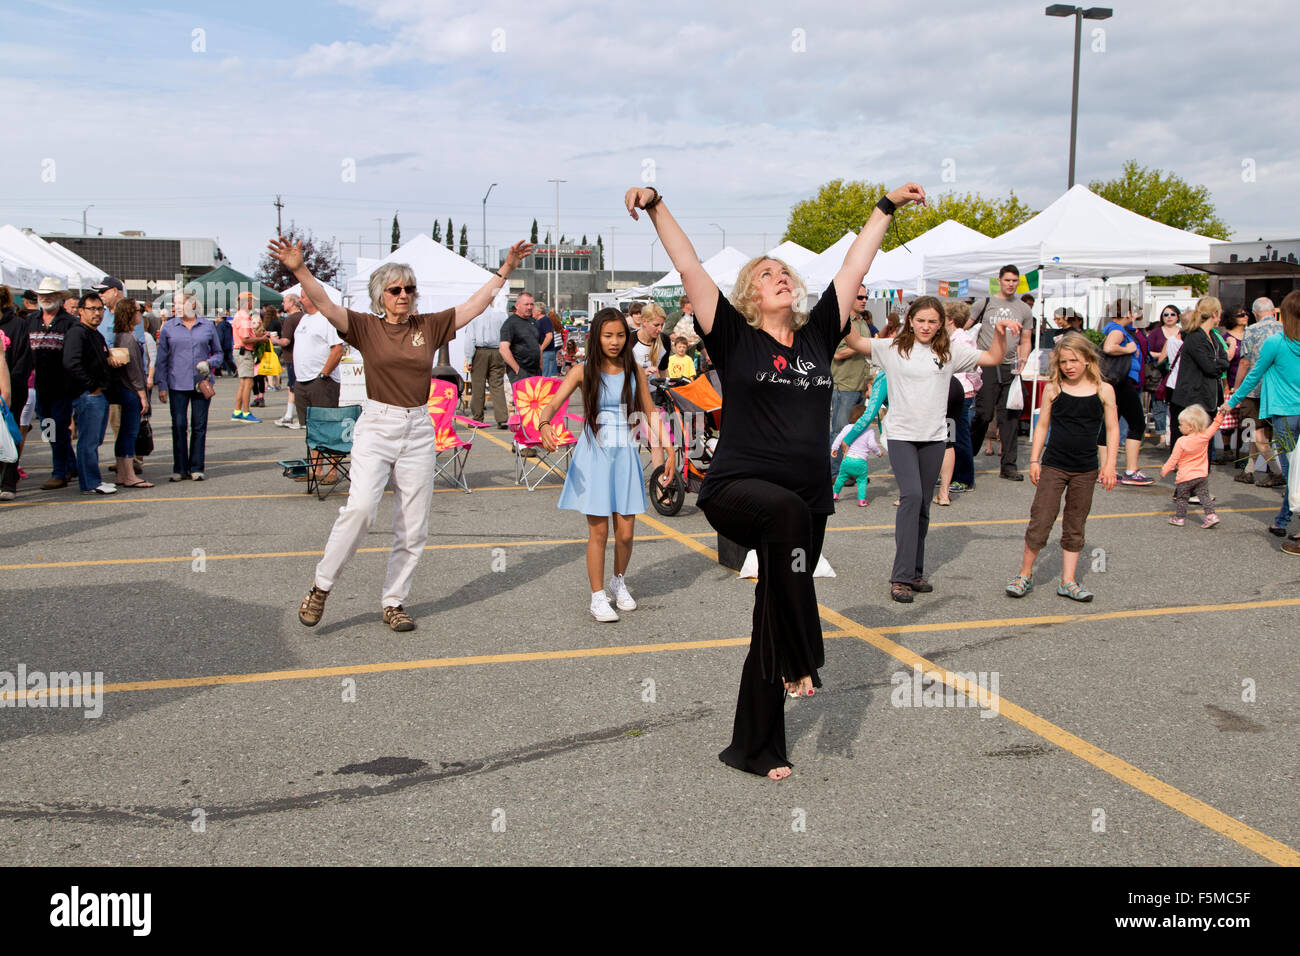 Nia instructor teaching 'movements' at South Anchorage Farmers Market. - Stock Image